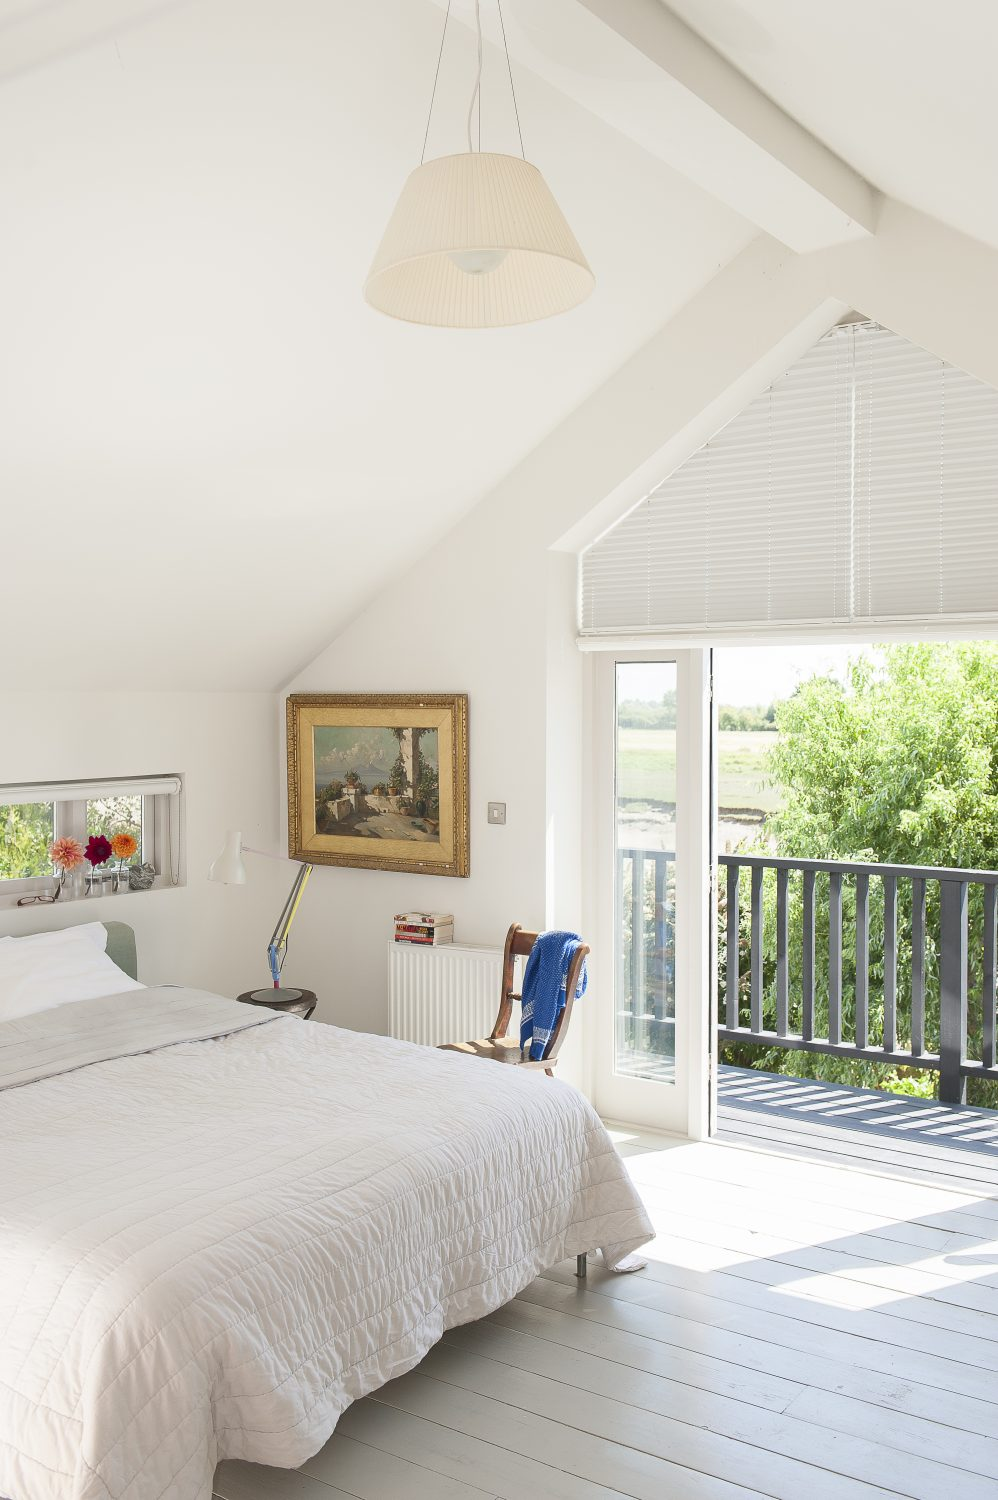 The lofty master bedroom features a balcony which looks out onto the river